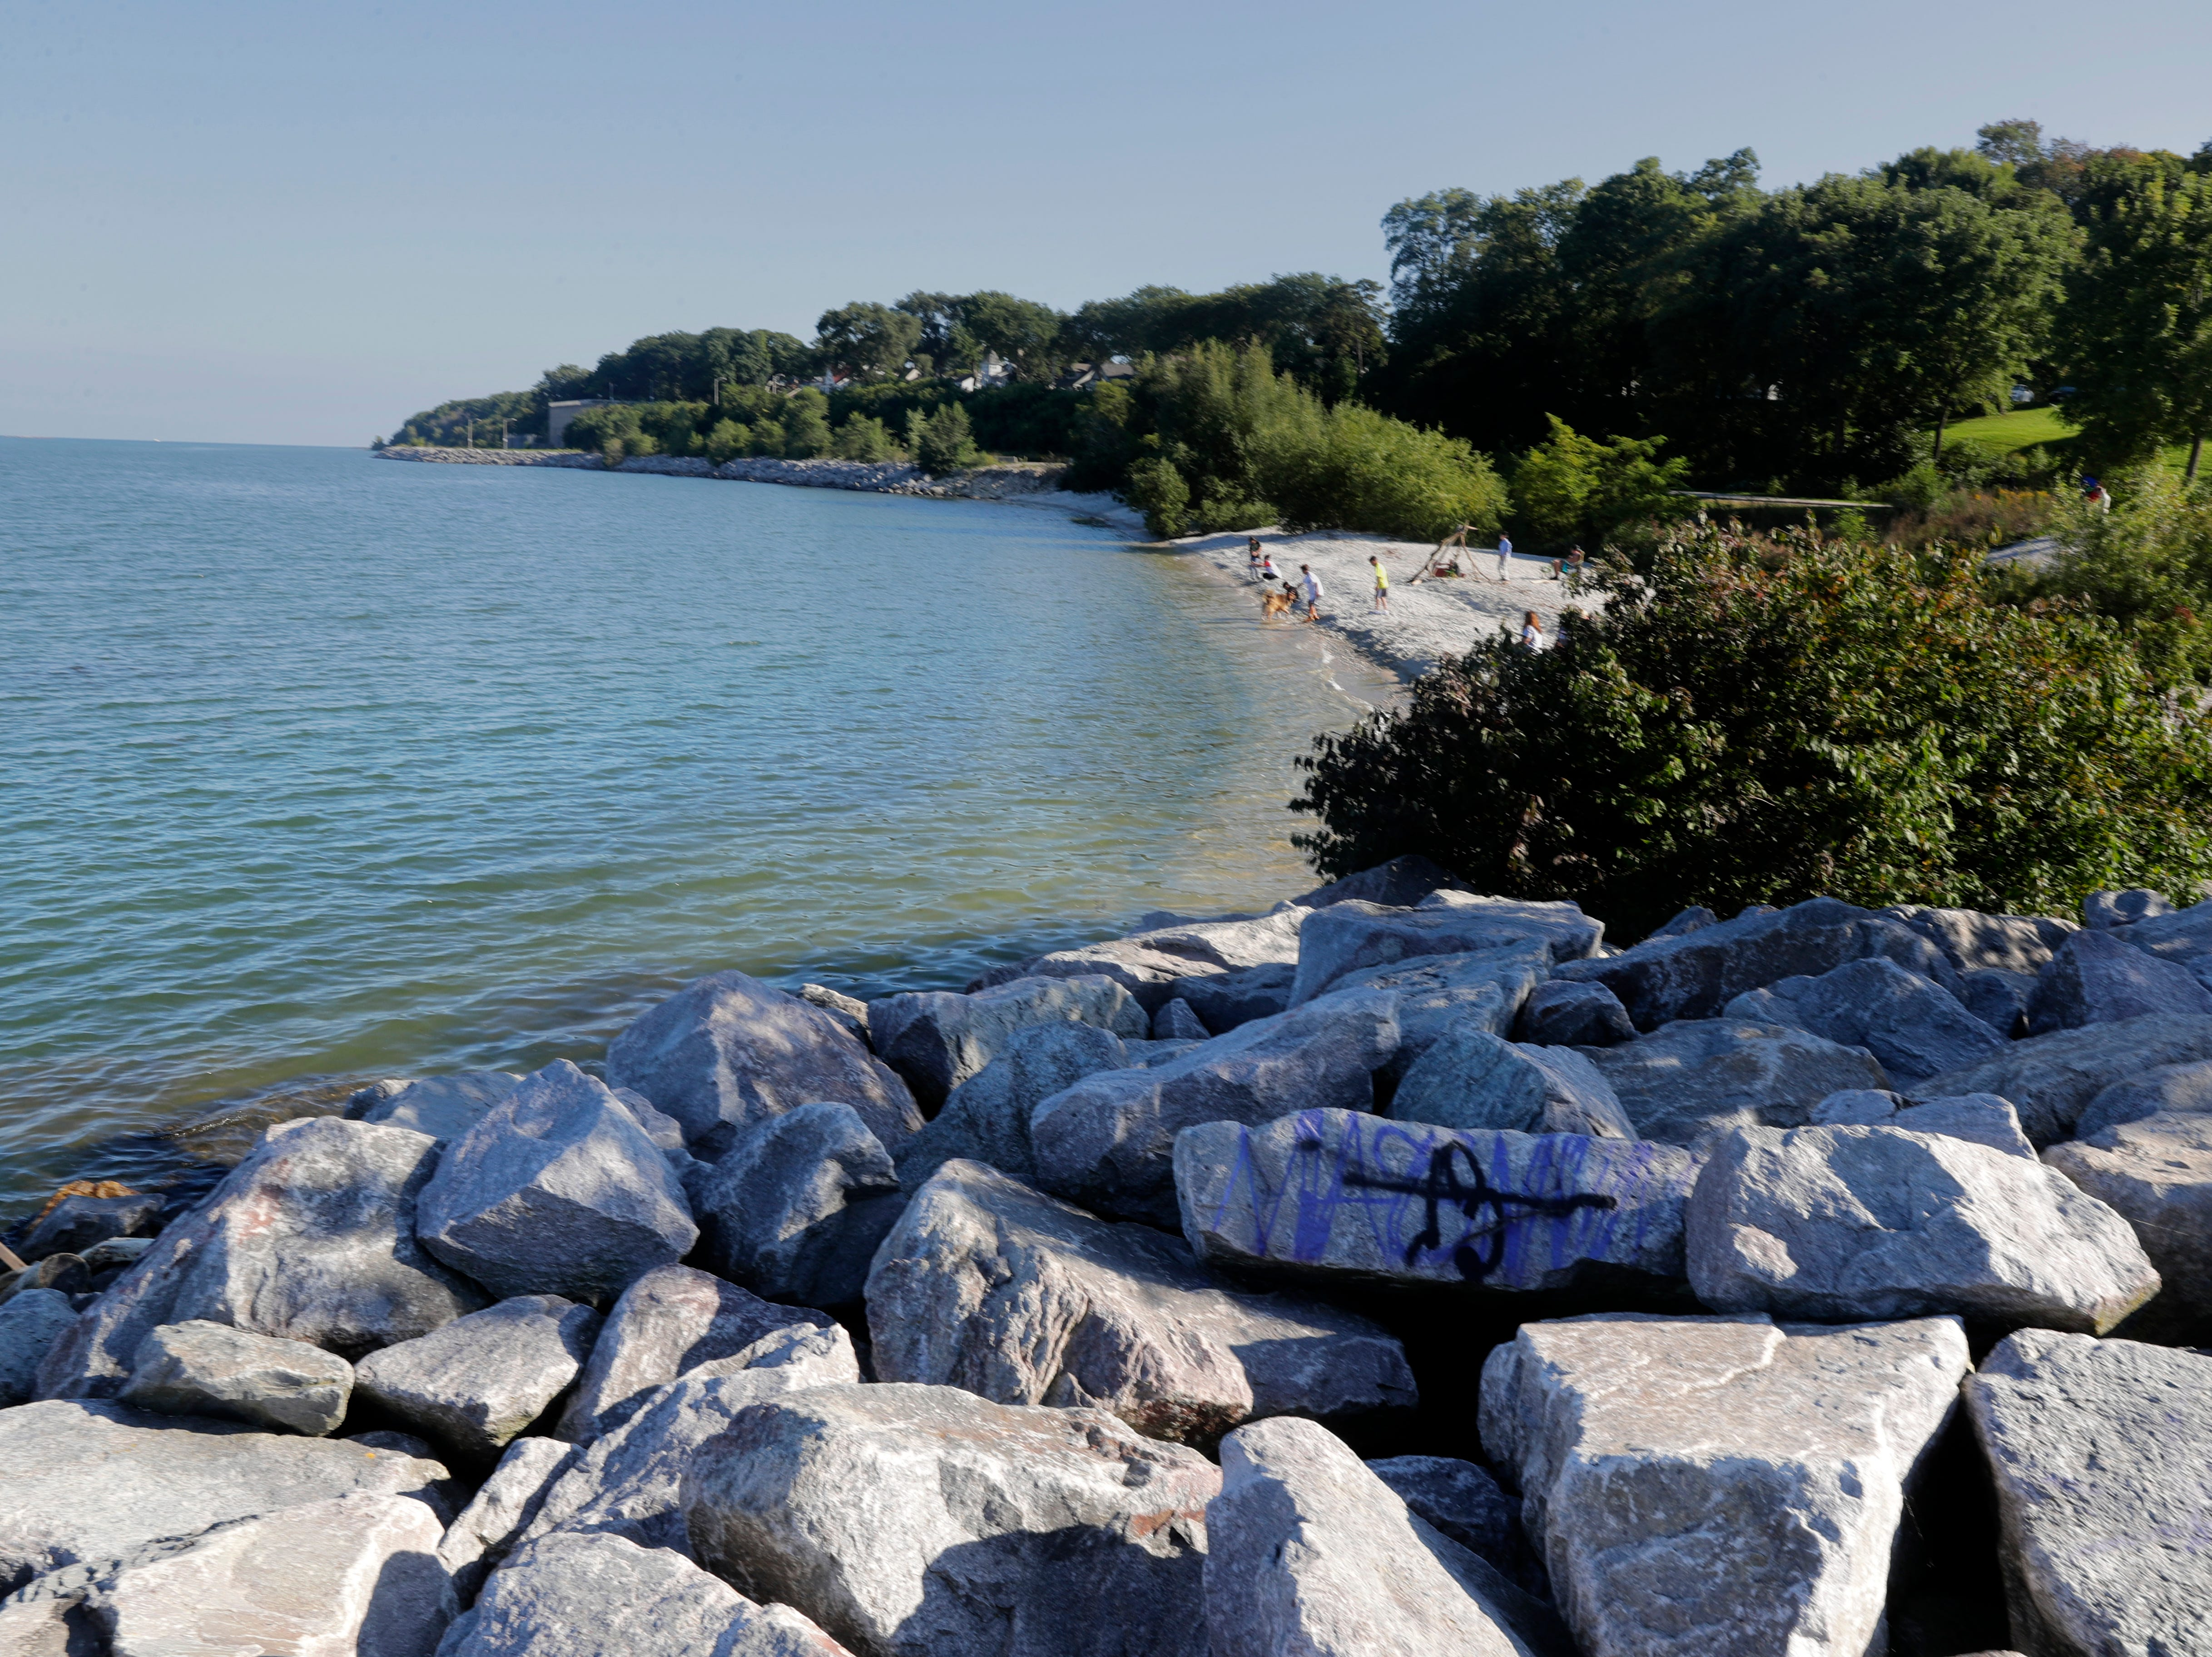 The South Shore Park beach could be relocated to the shoreline south of this old jetty near the pavilion.